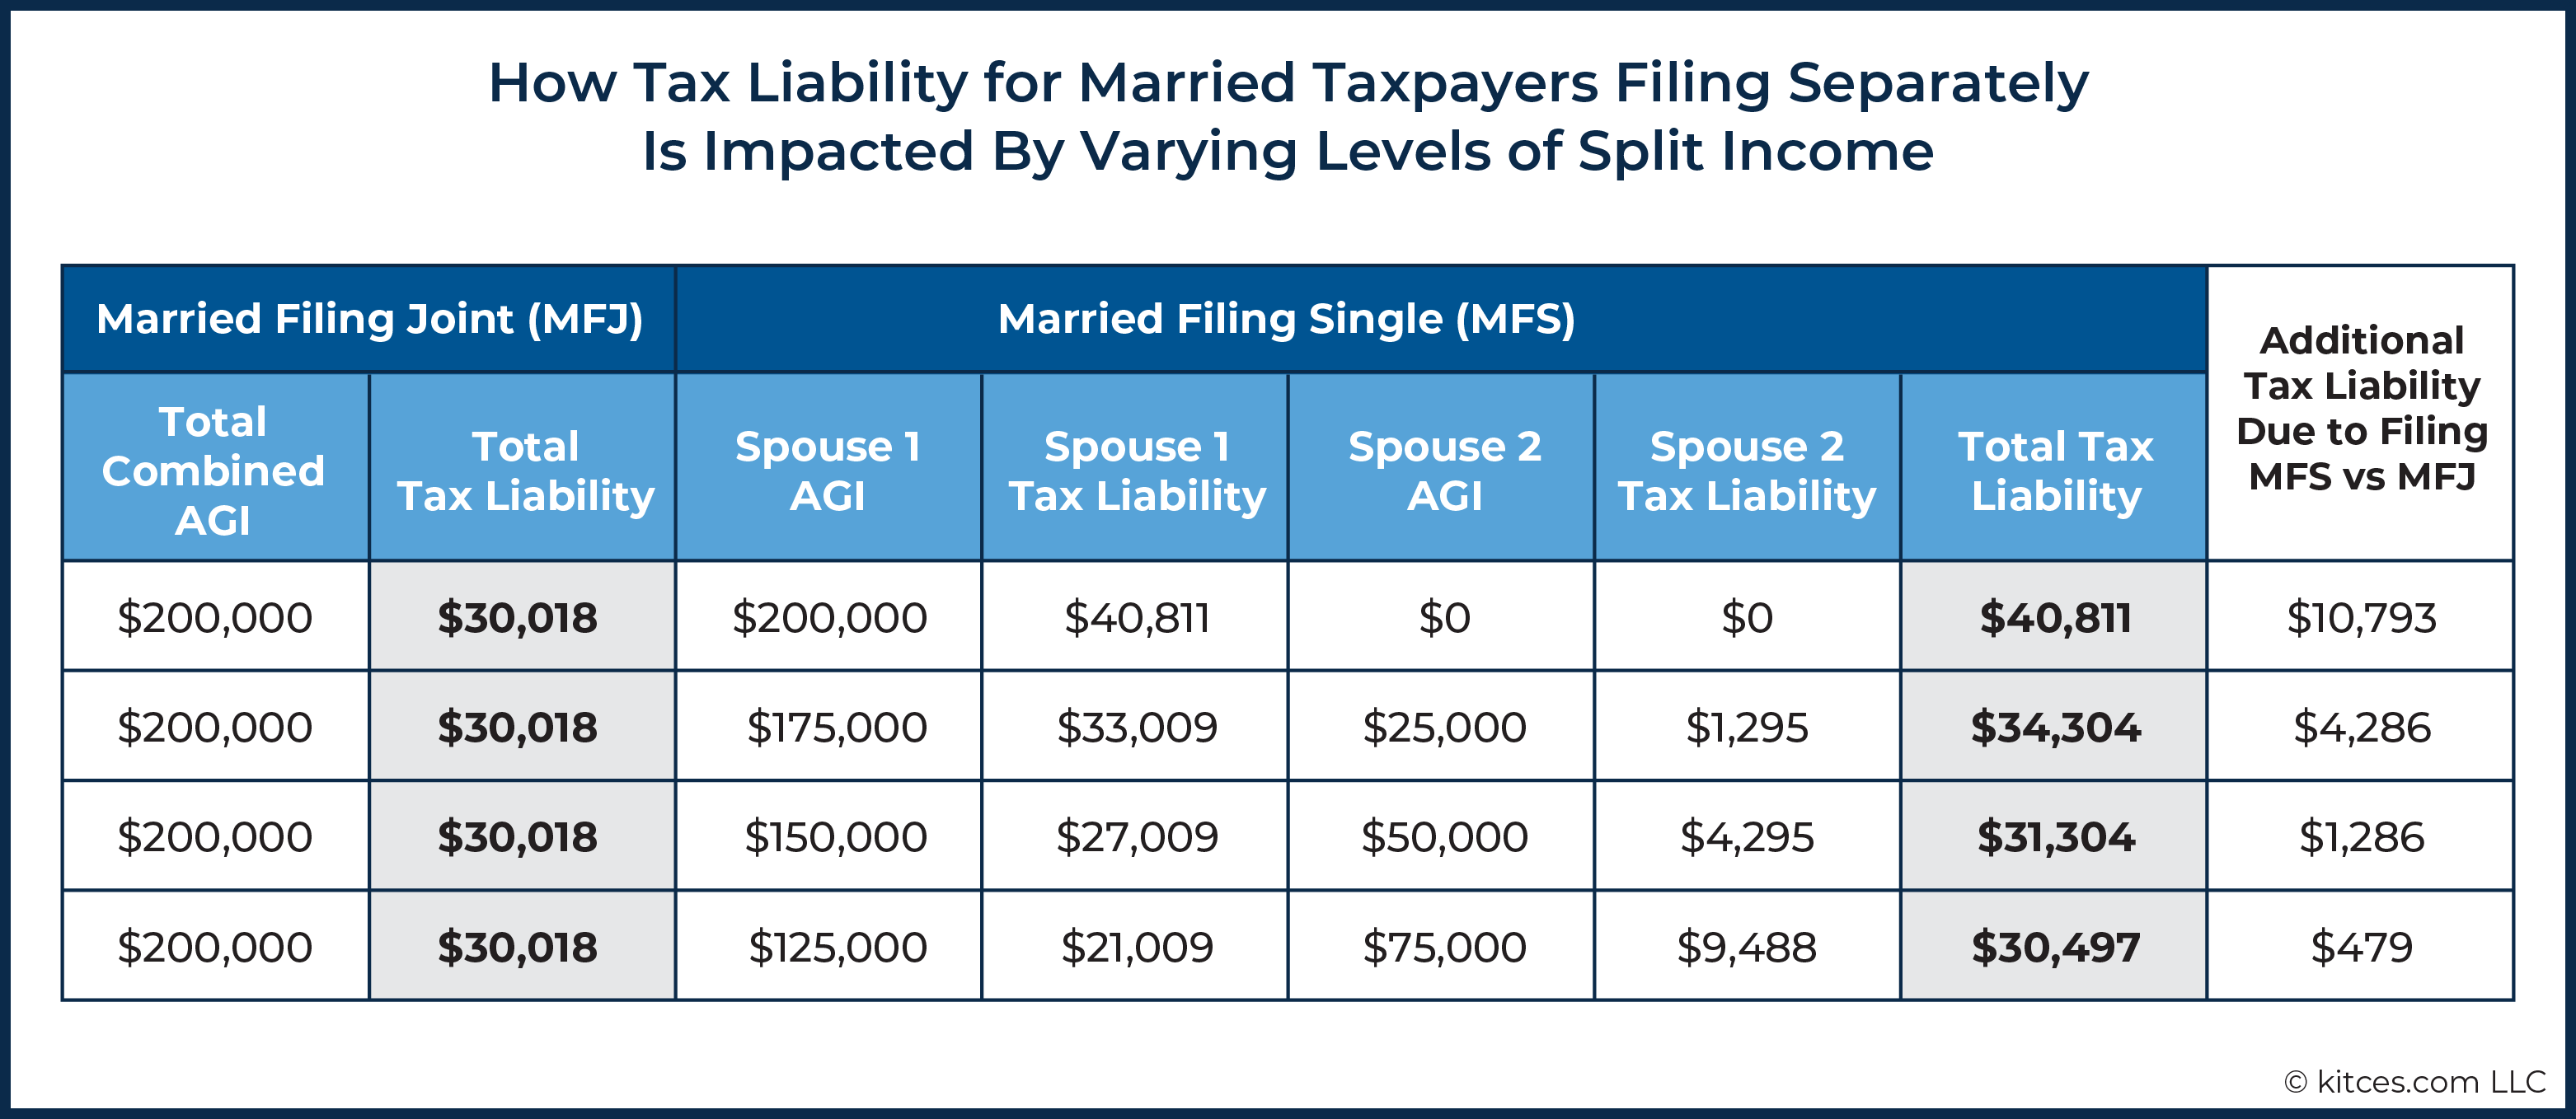 02 How Tax Liability for Married Taxpayers Filing Separately Is Impacted By Varying Levels of Split Income